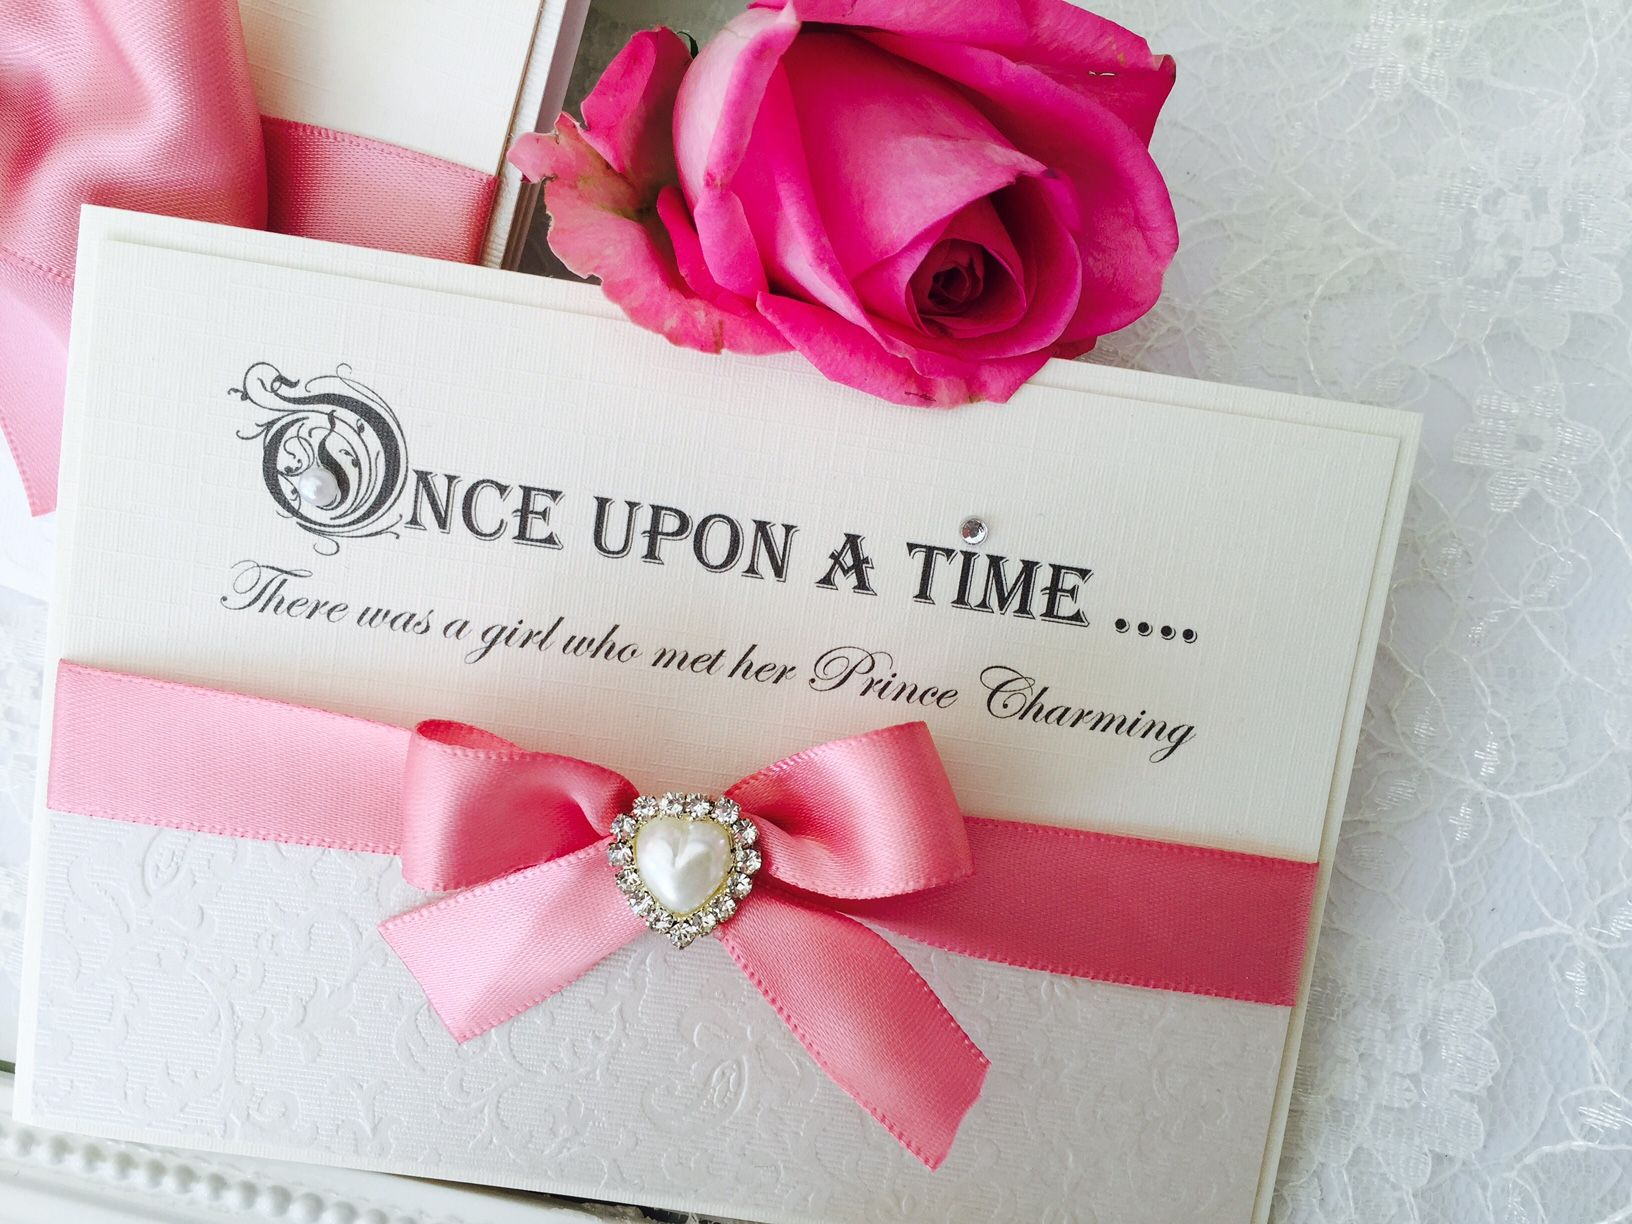 Save the date cards printed with fairytale quotes